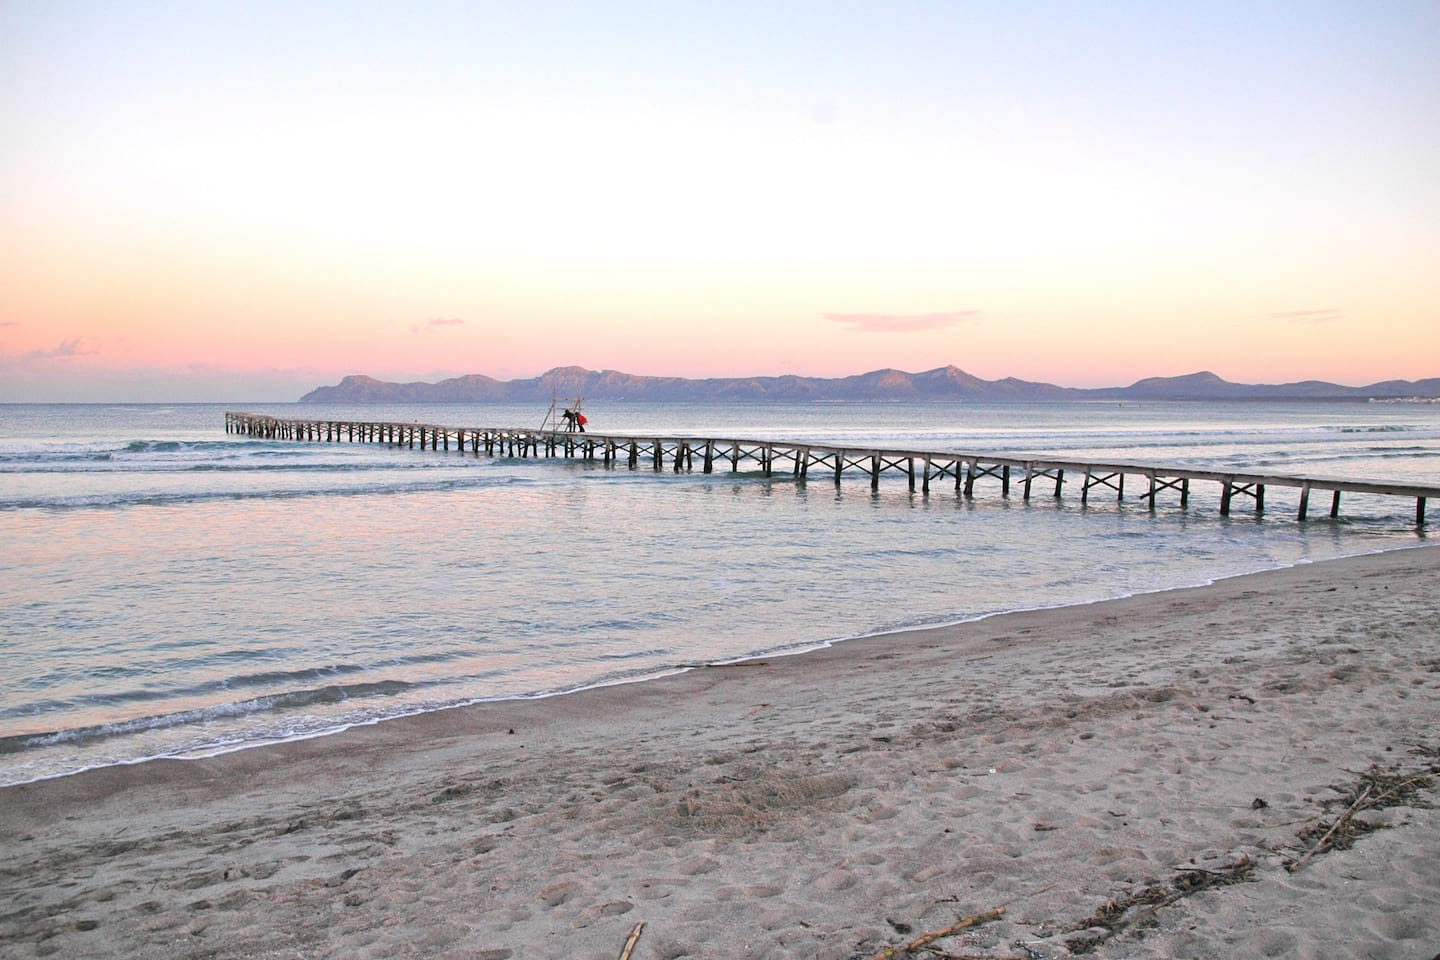 Platja d'alcudia/ Platja de Muro.  Large, calm, sandy beach 300 metres from our apartment.  Really safe for children because it is so shallow. We love to walk along at sunrise and sunset both in summer and winter.